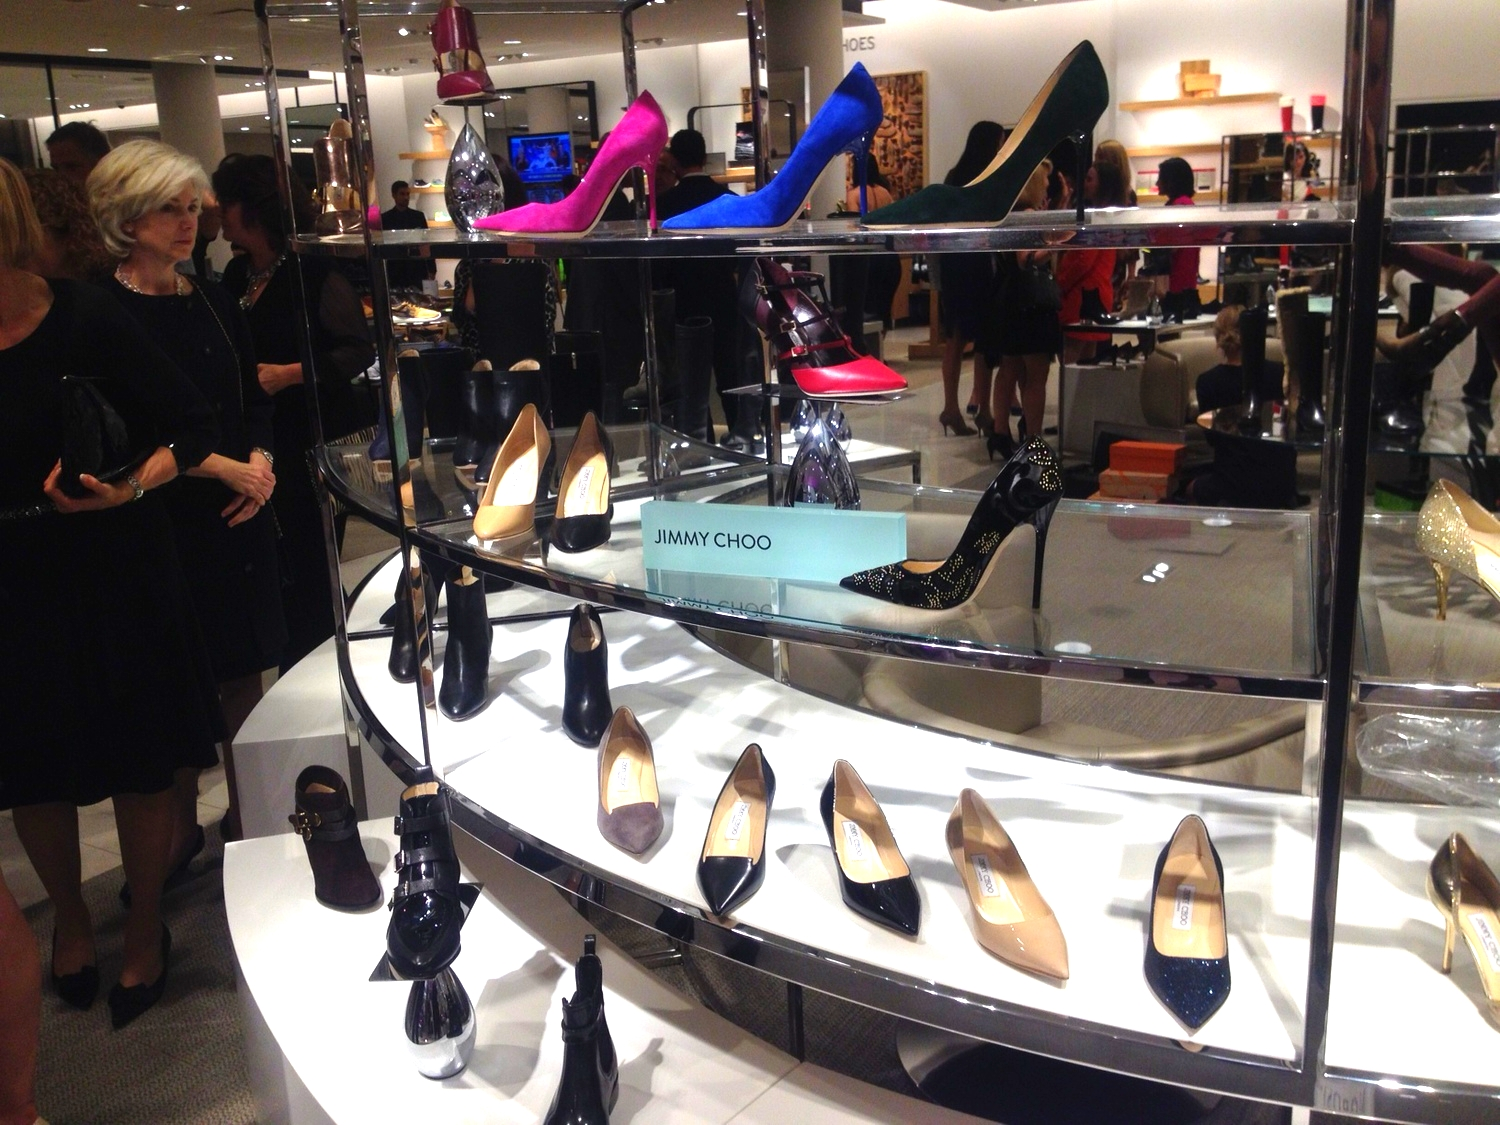 The store features over 30 styles of Jimmy Choo women's footwear.